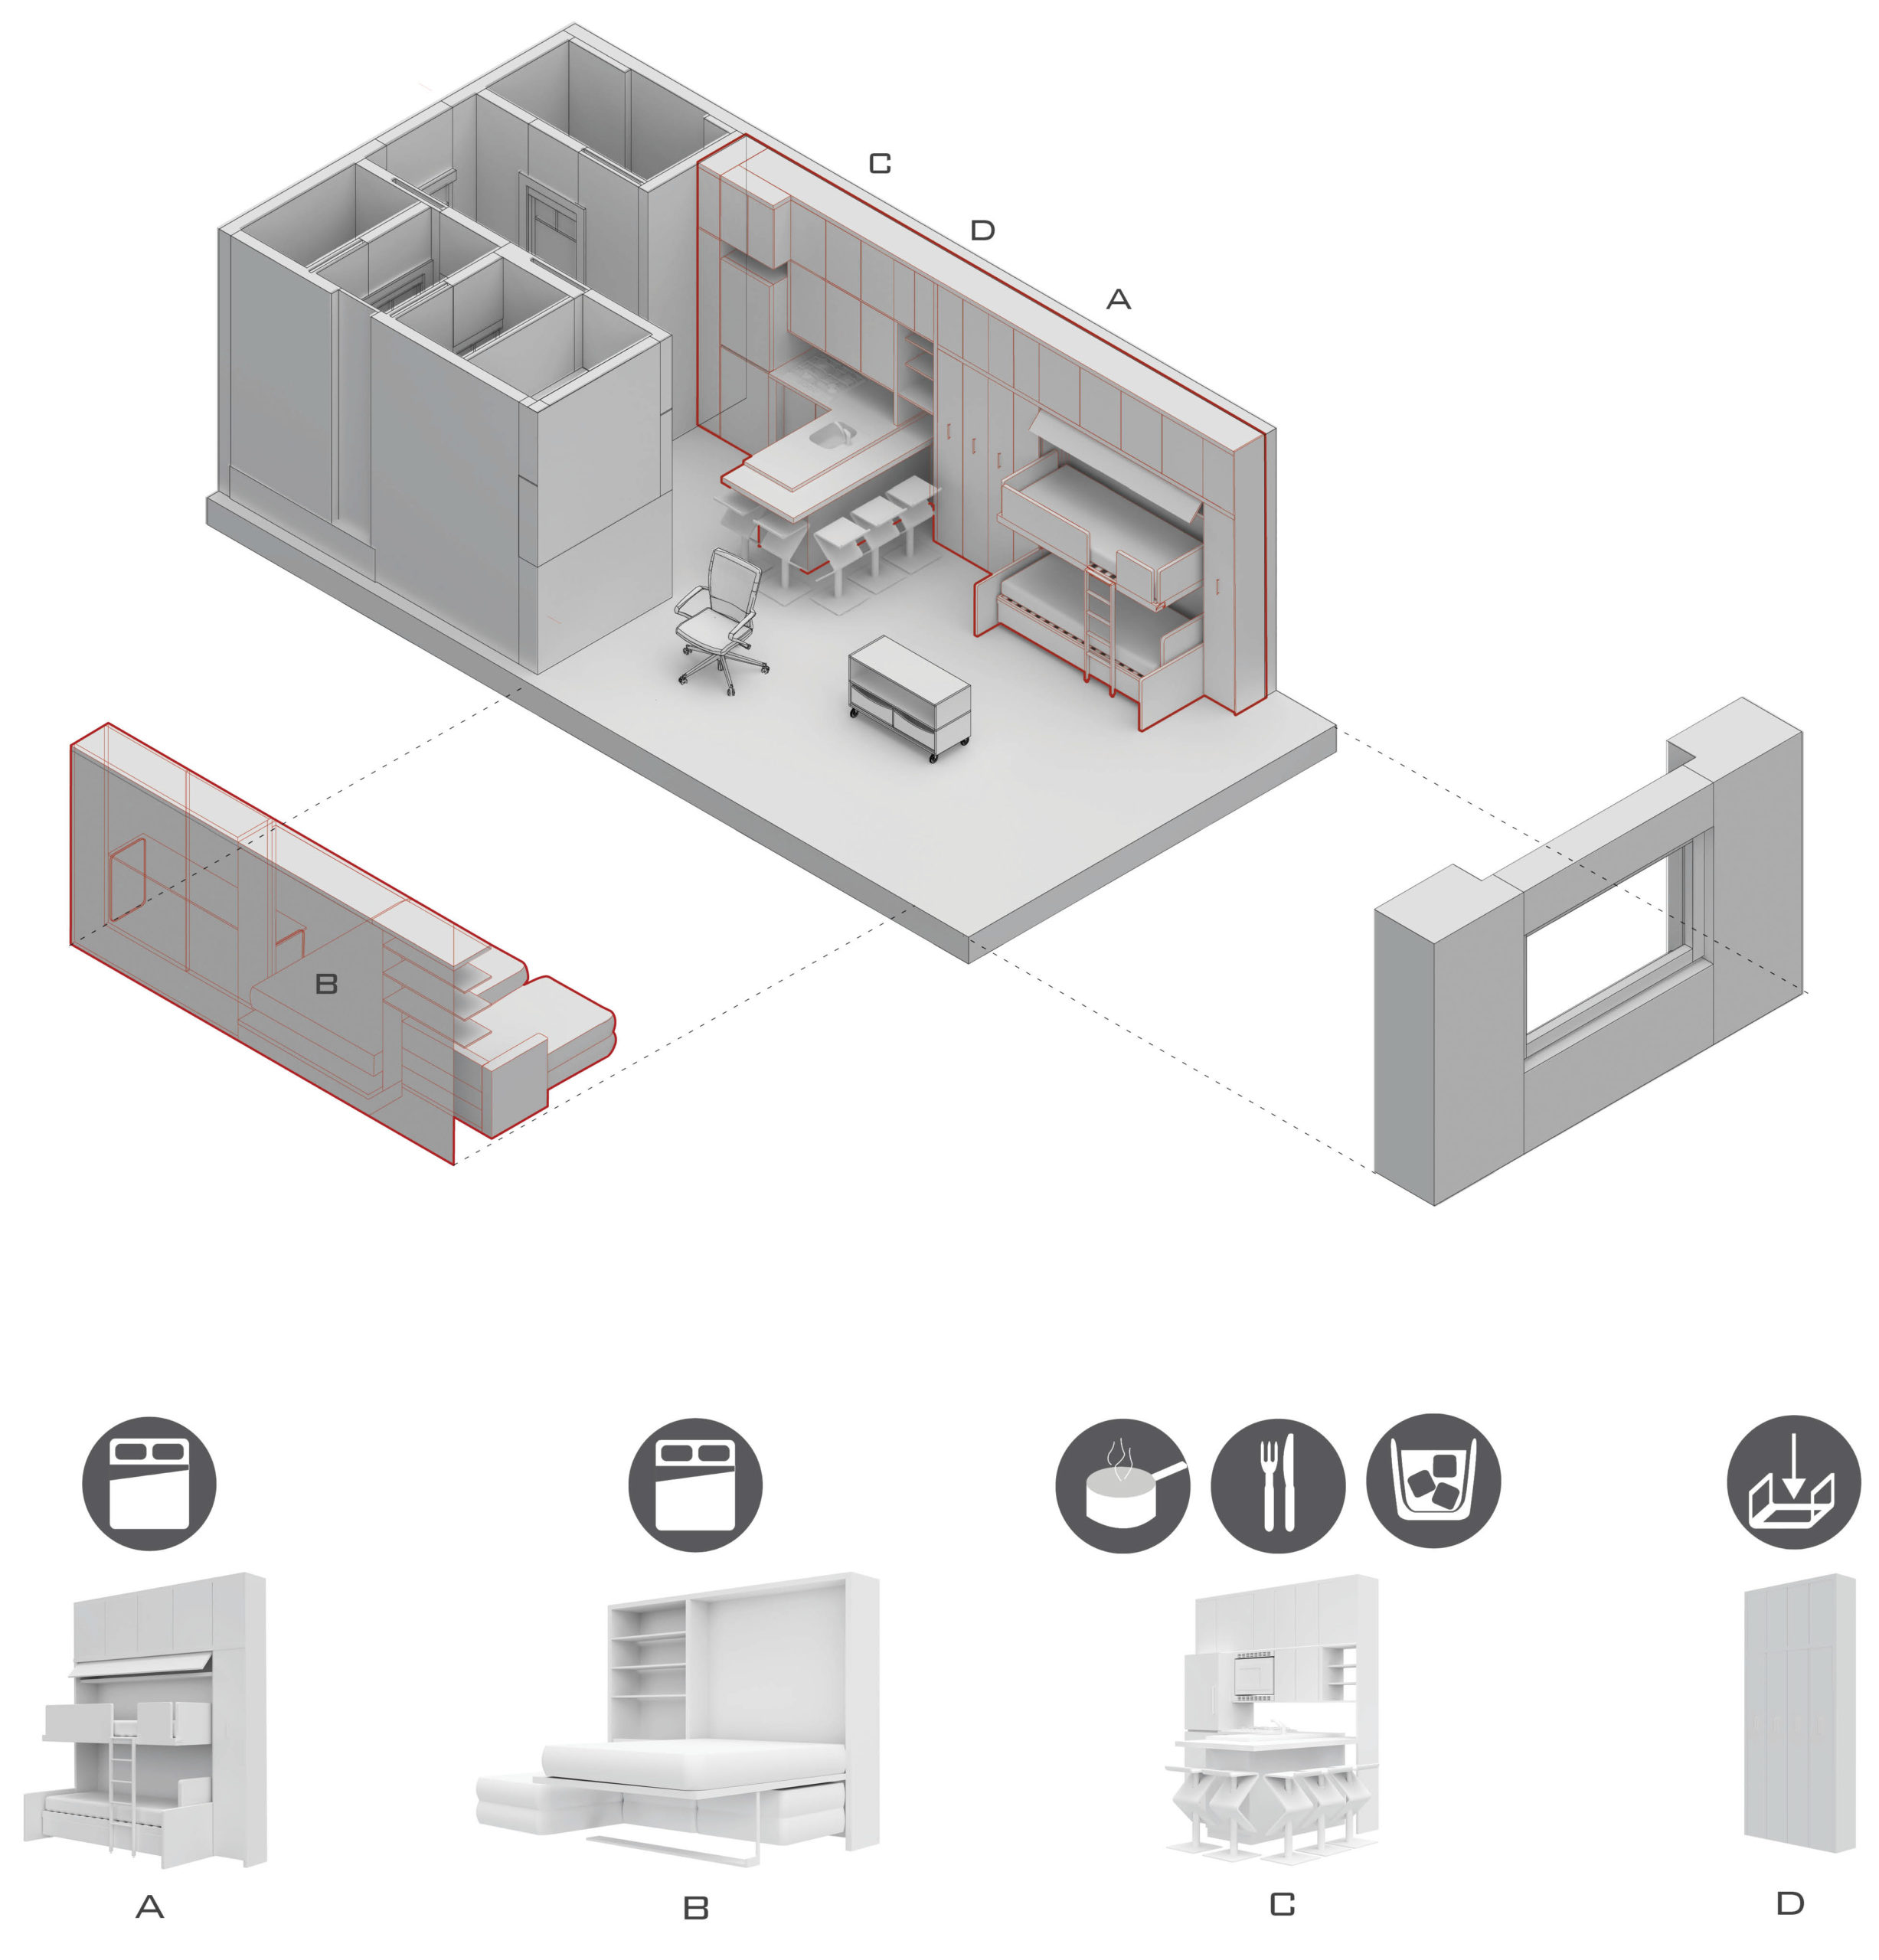 Small space optimized with a multifunction wall system for 24 hour use